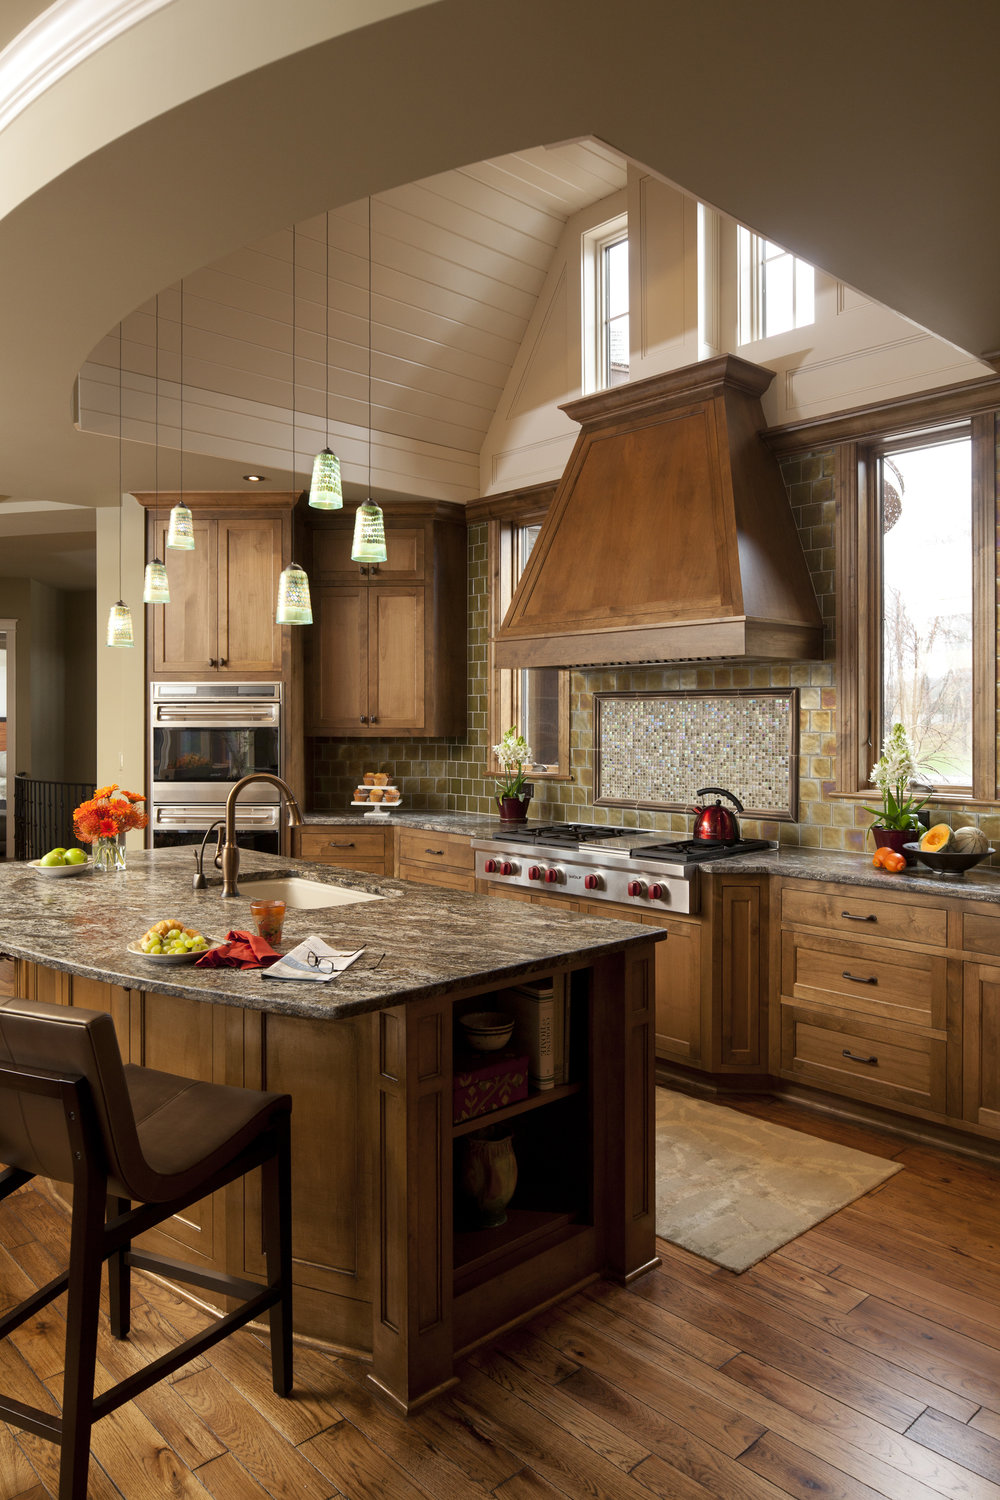 KITCHEN houzz.jpg